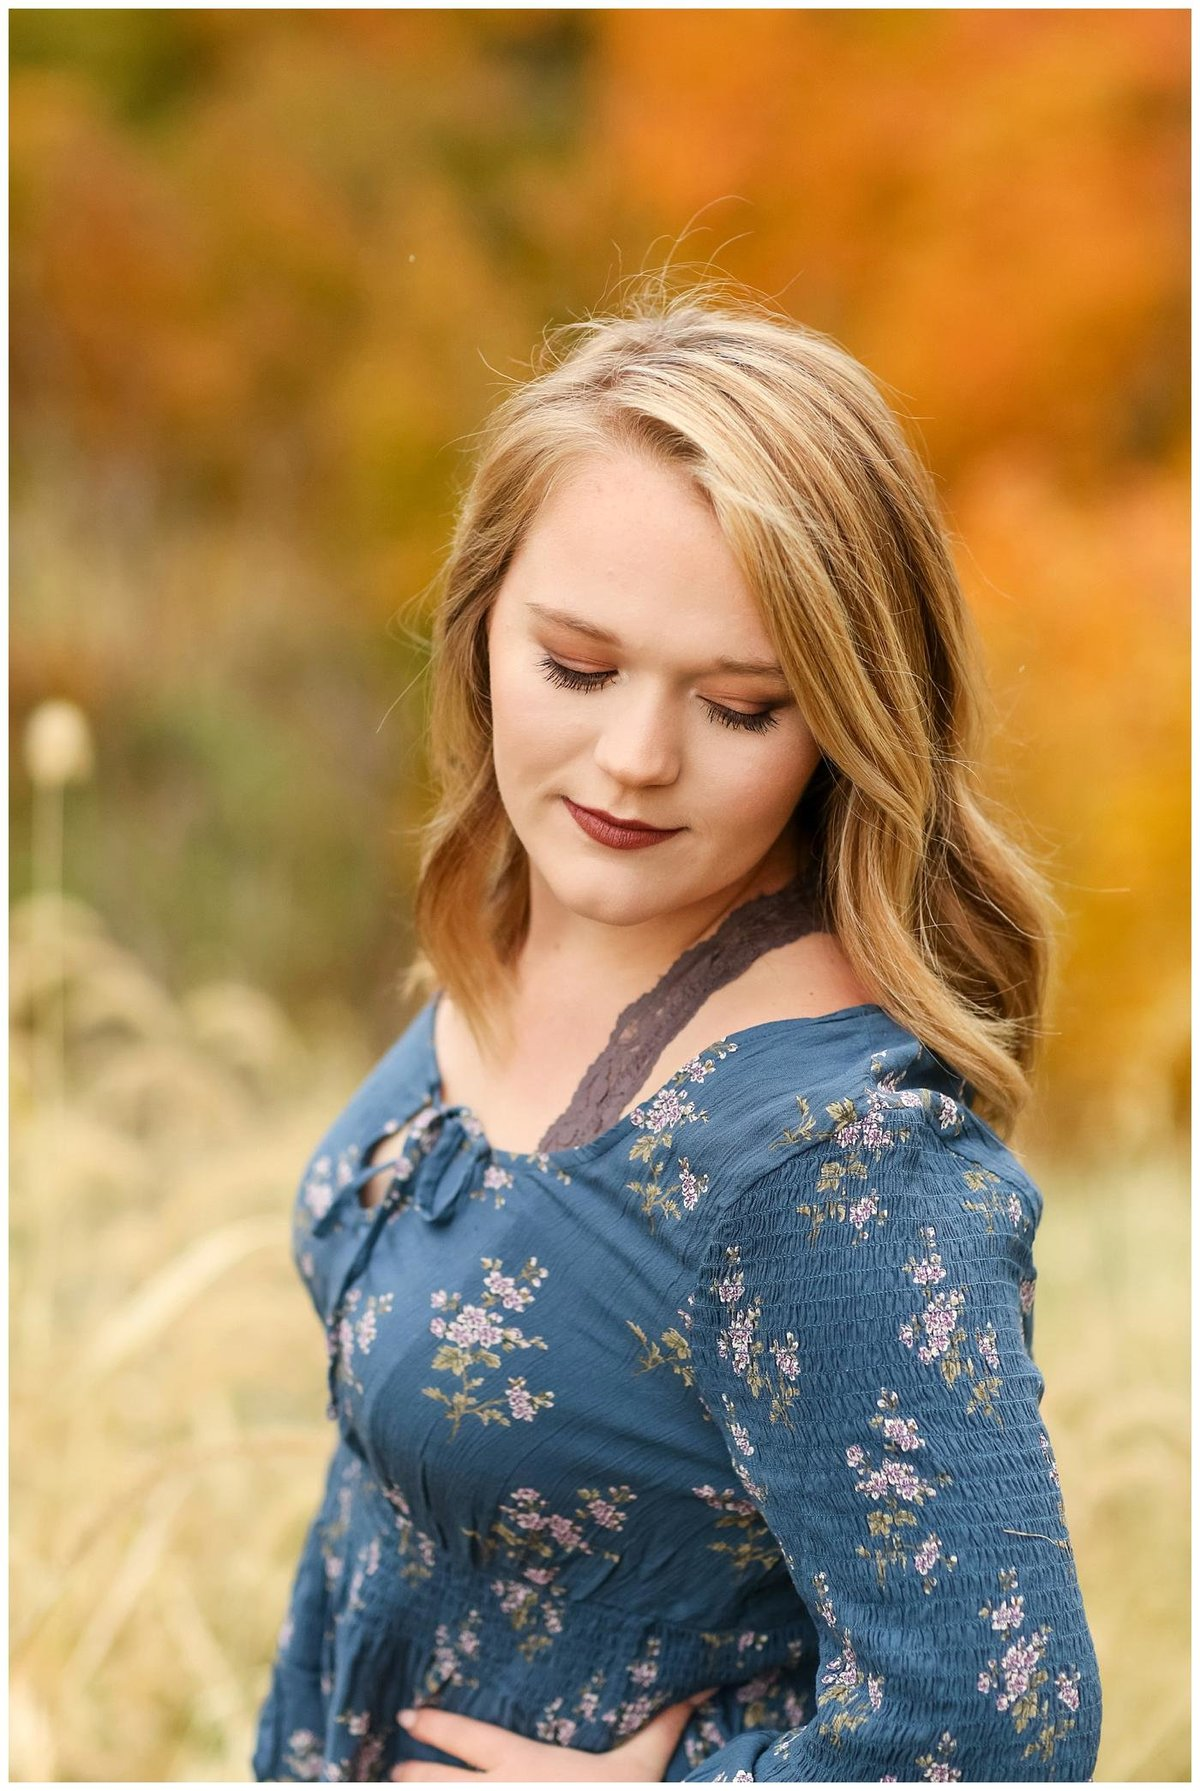 Central Illinois Senior Photographer | Macomb, IL Senior Photographer |  Creative Touch Photography_4863